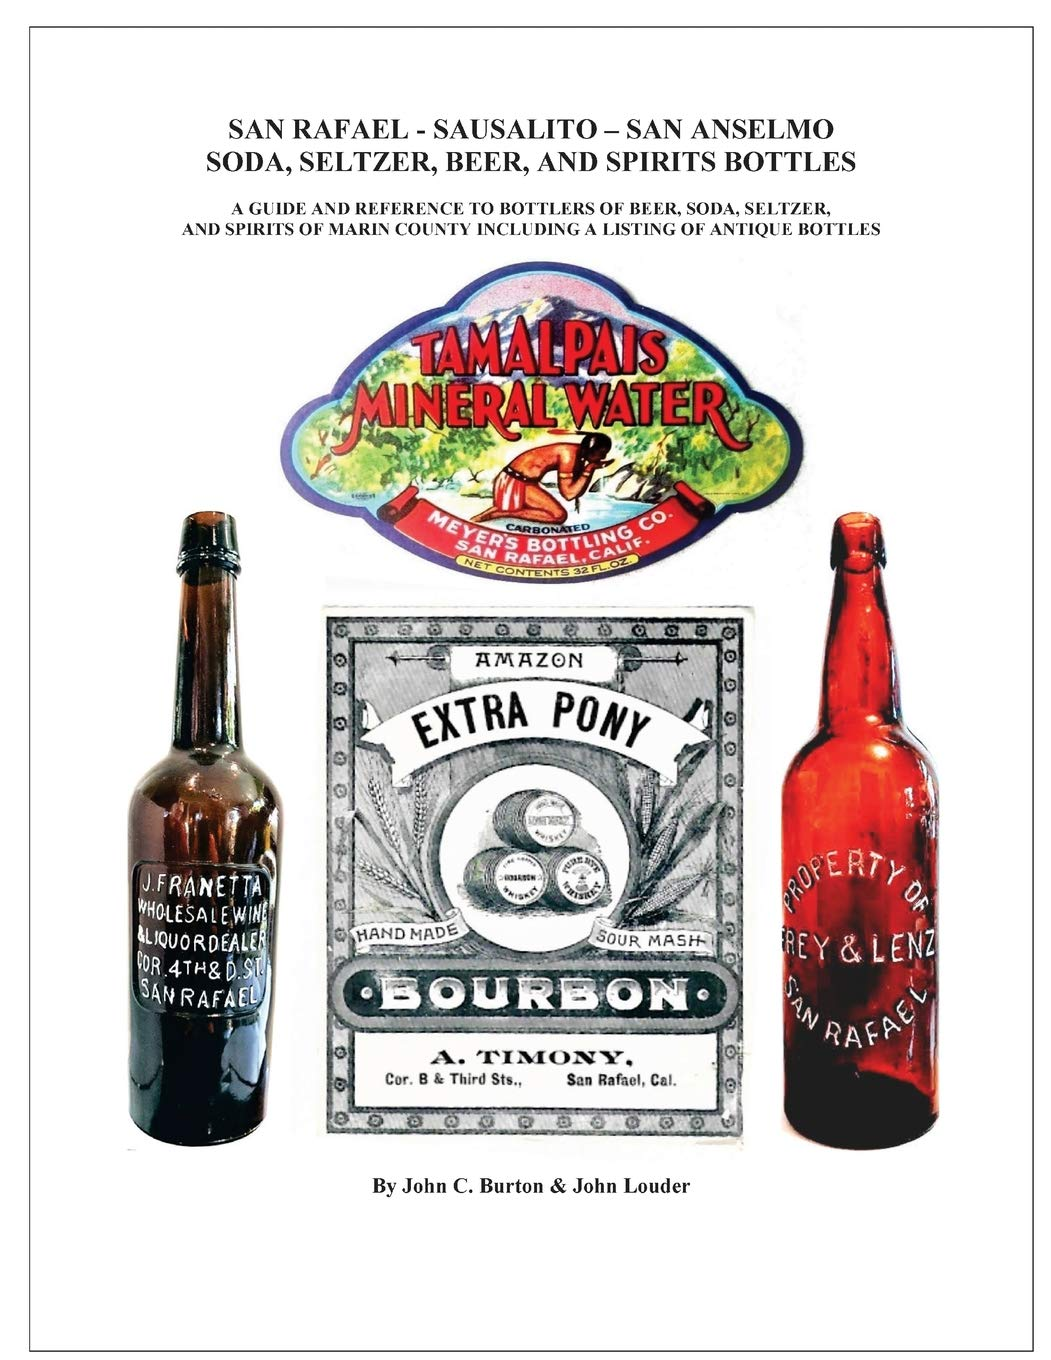 San Rafael - Sausalito - San Anselmo Bottles: Guide and Reference to Bottles of Beer, Soda, Seltzer, and Spirits of Marin County